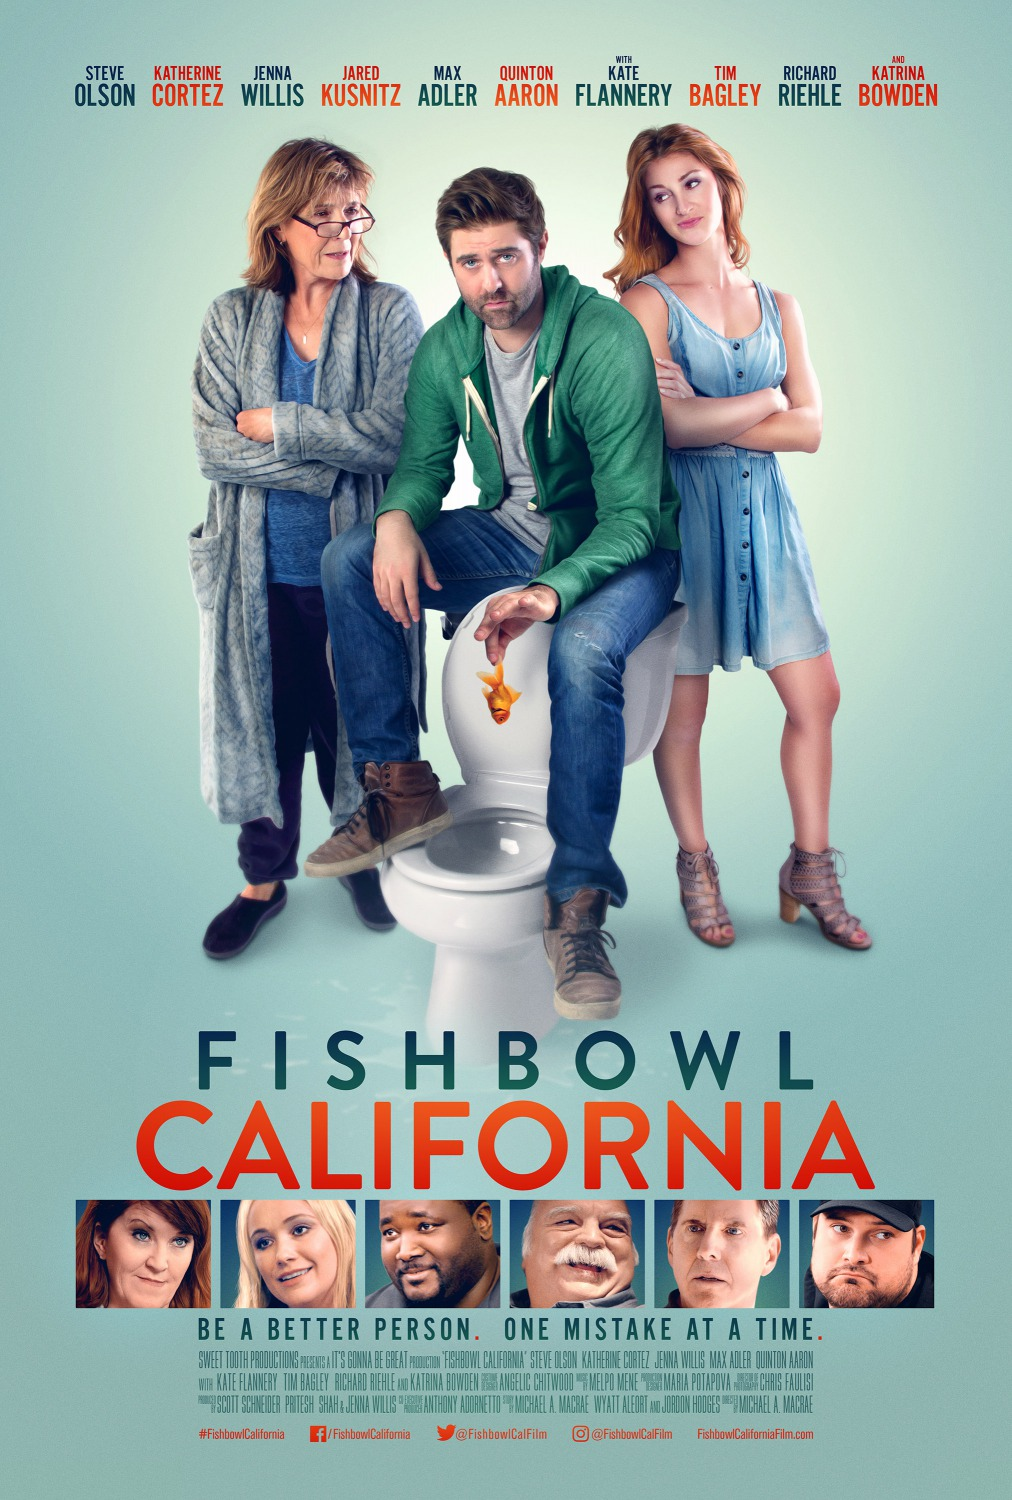 18 fishbowl california top 25 movie posters of 2018